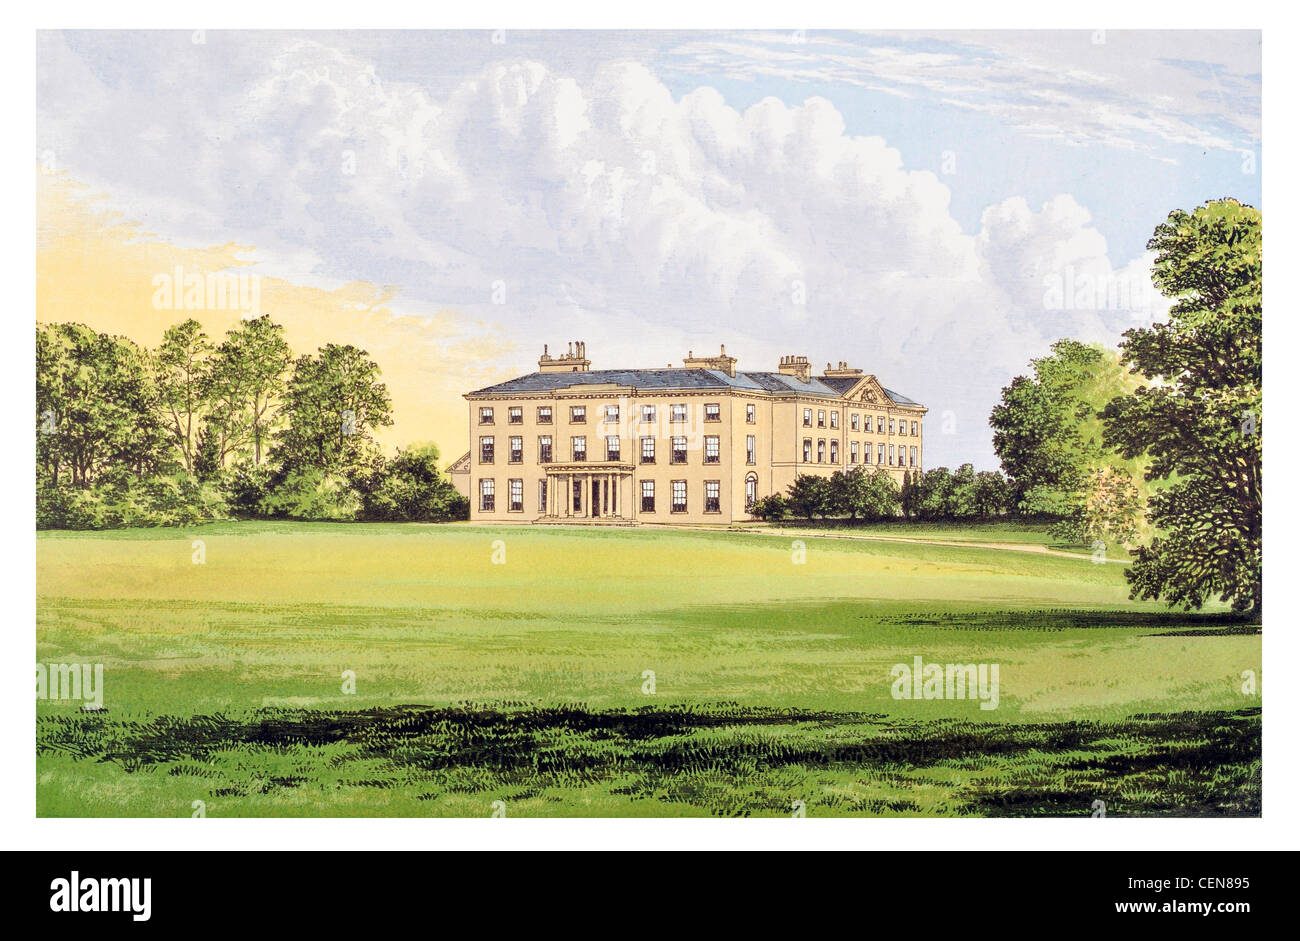 Farnham House England UK Parkland Park Mansion Manor Stately Home Hall Palace Estate Castle Landscaped Garden Architecture